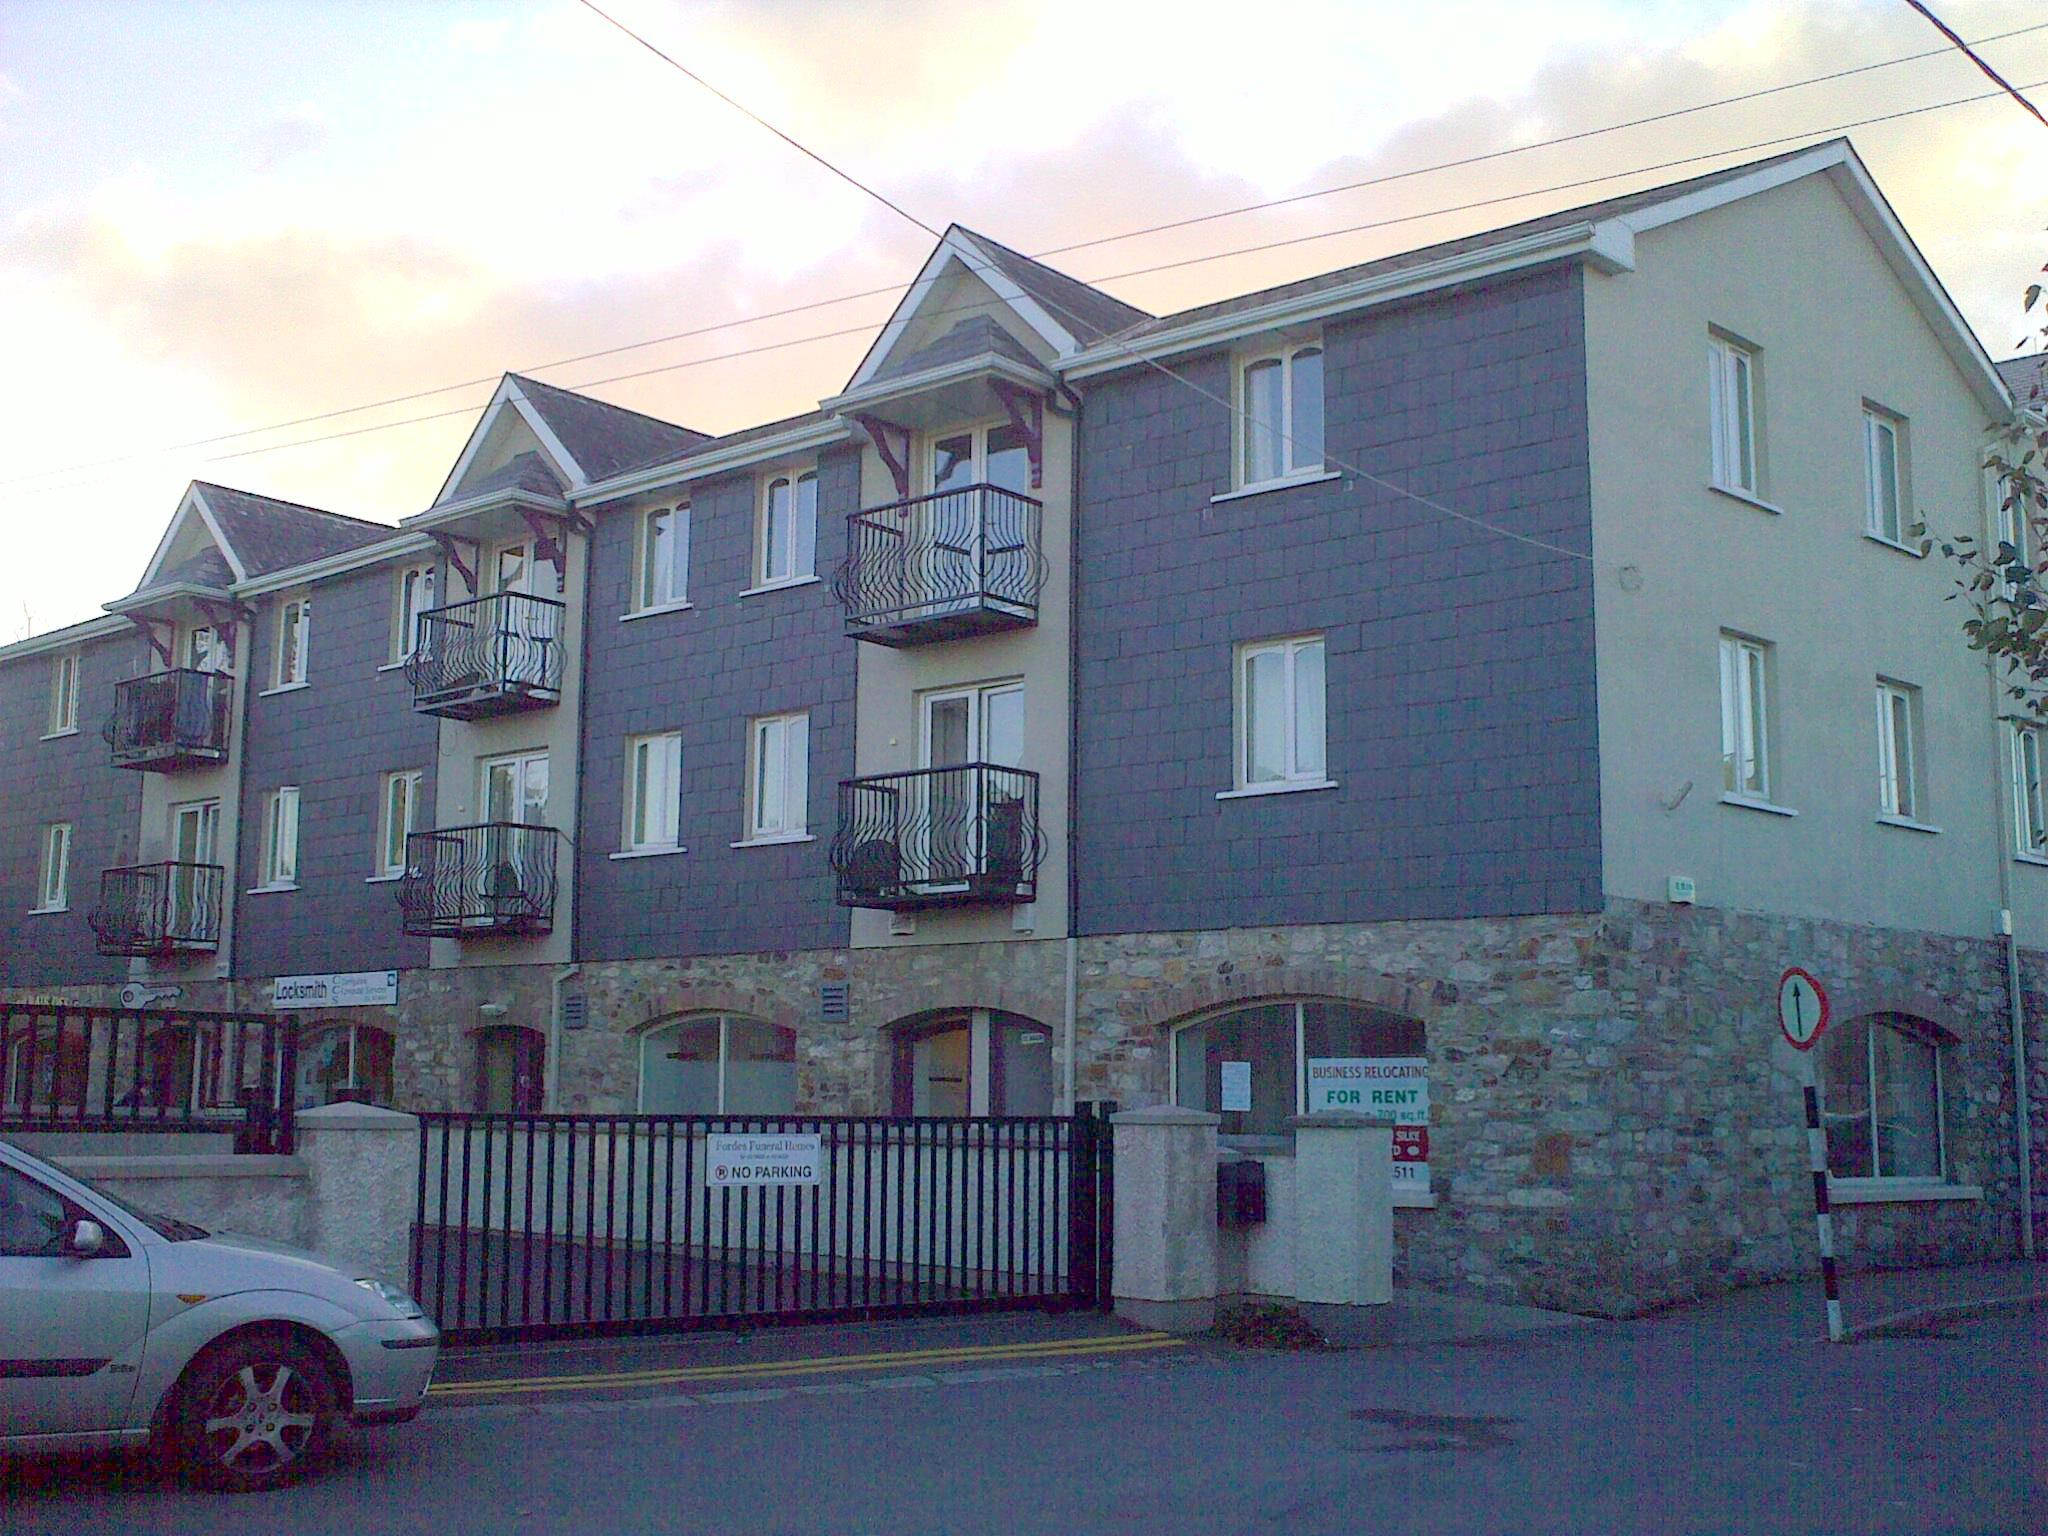 Hotels in Carrigaline. Book your hotel now! - confx.co.uk